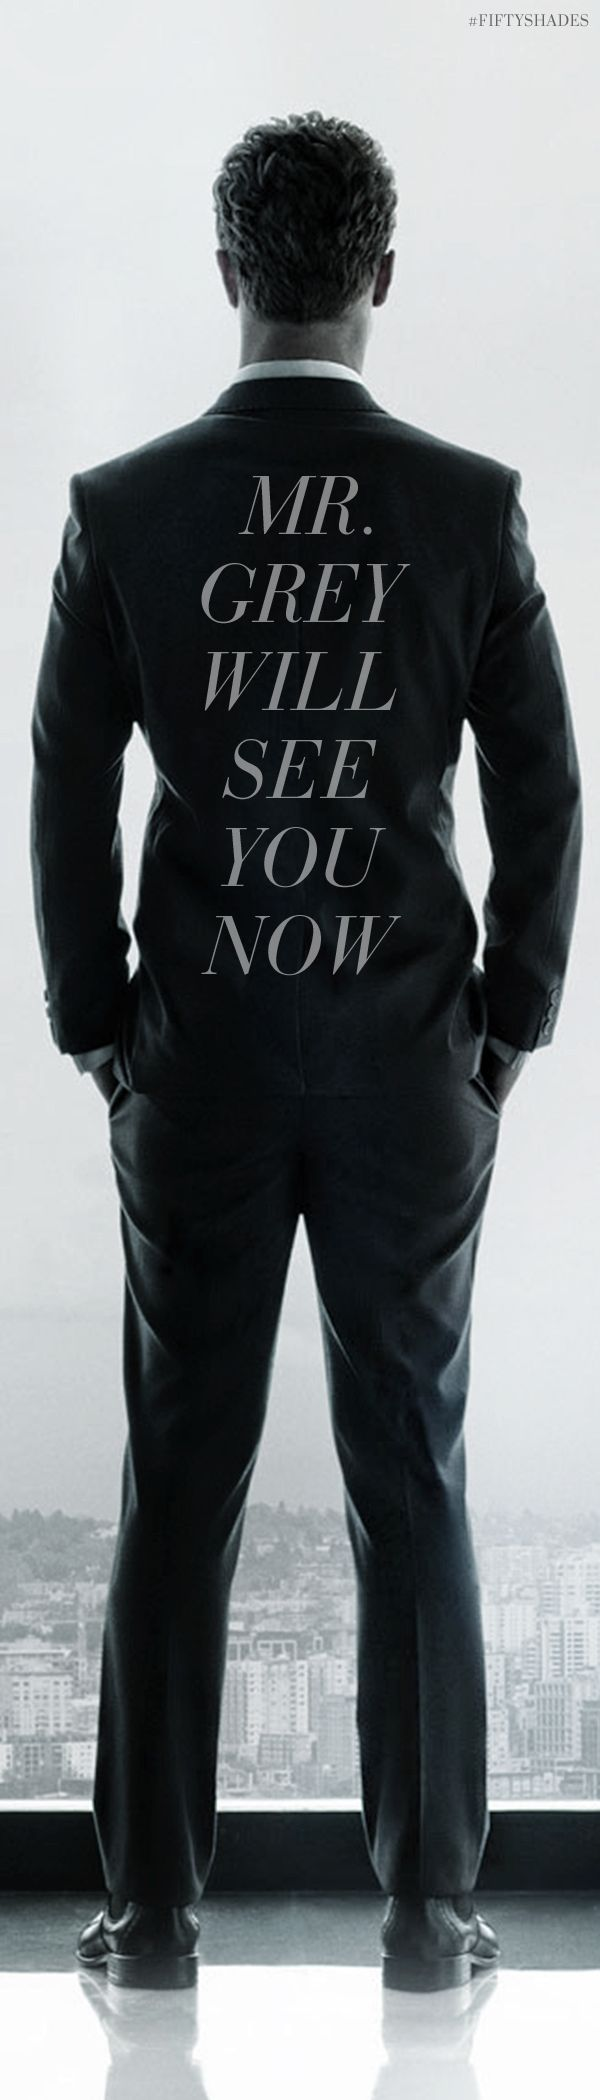 Mr. Grey will see you now. | Fifty Shades of Grey | In Theaters Valentine's Day 2015